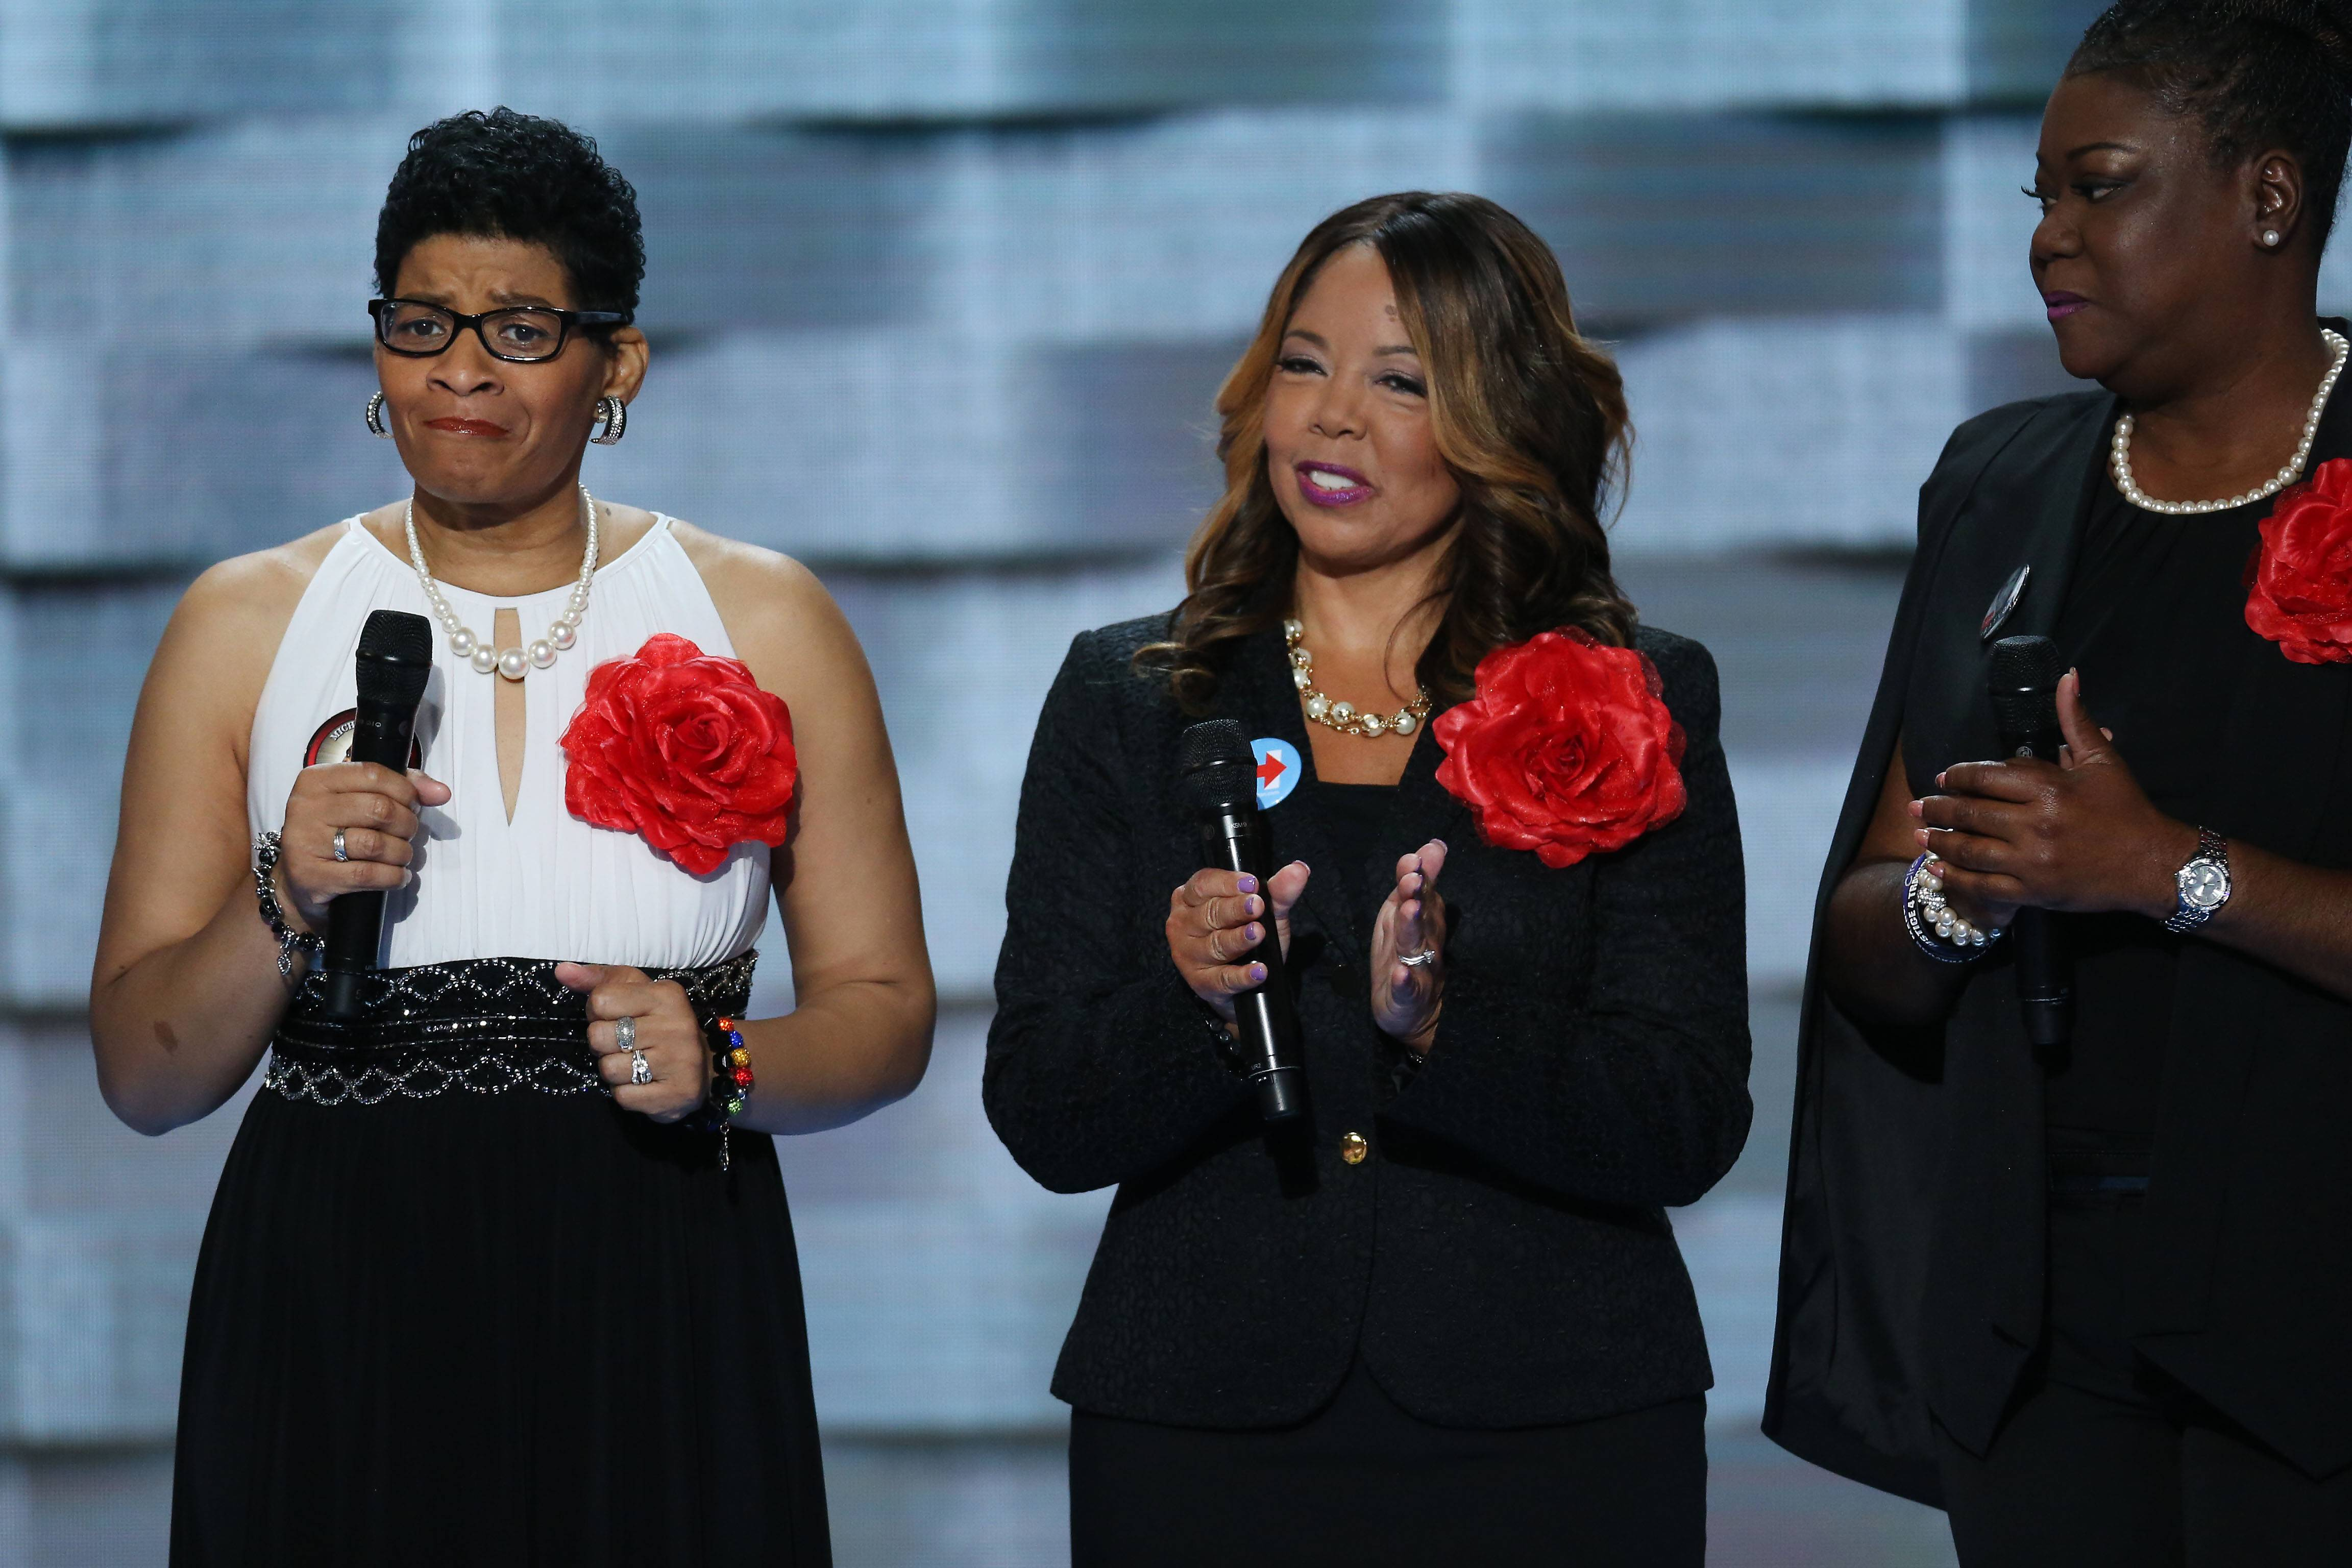 Geneva Reed-Veal, left, and other members of Mothers of the Movement stand on stage during the Democratic National Convention (DNC) in Philadelphia, Pennsylvania, U.S., on Tuesday. Democrats began their presidential nominating convention Monday with a struggle to fully unite the party, following a dramatic day of internal squabbling and protests.